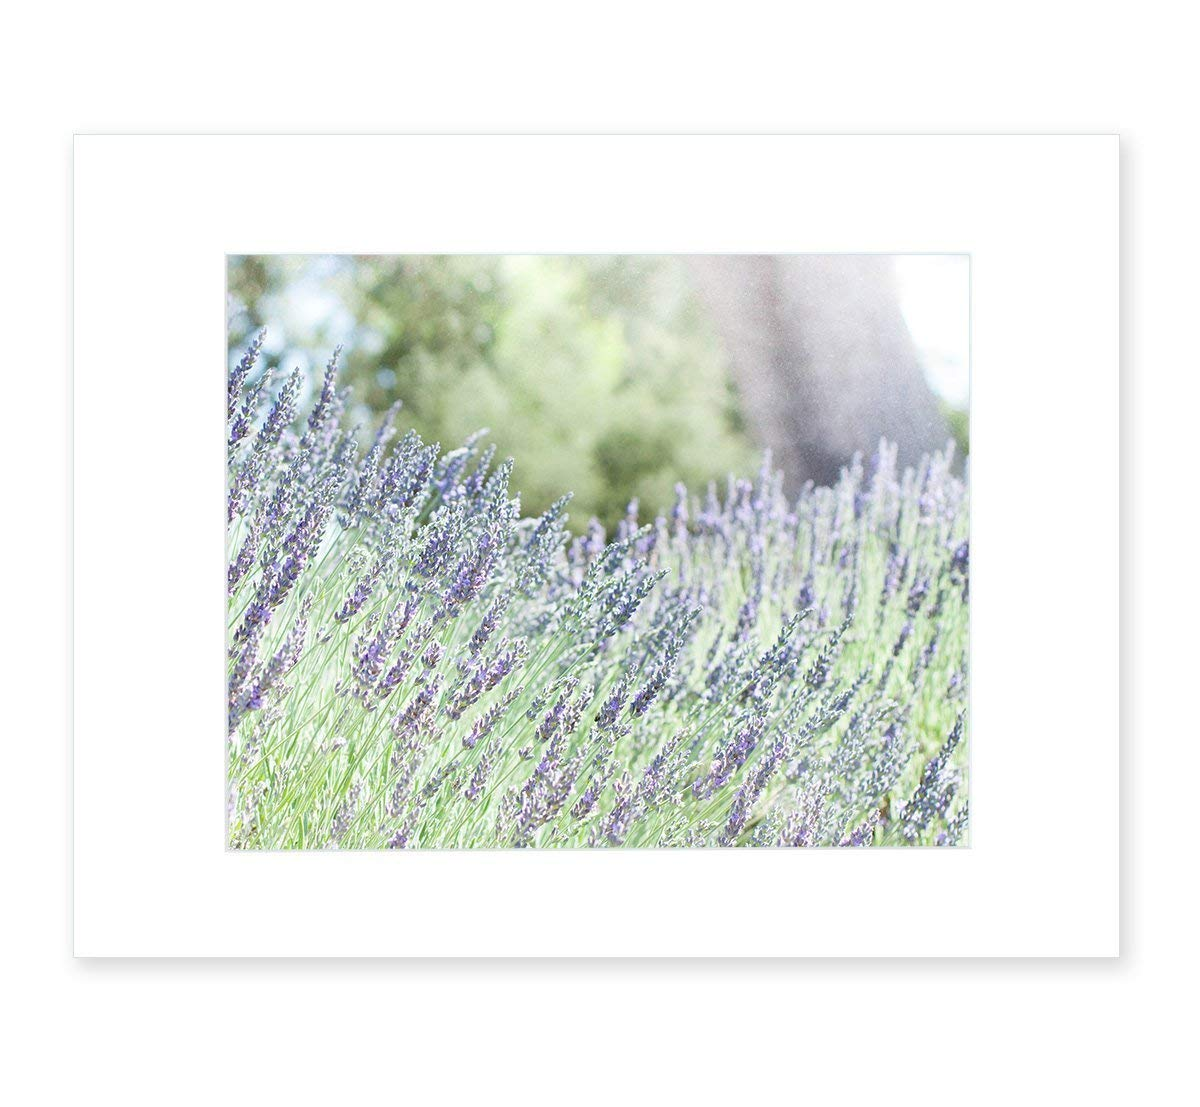 Rustic Wall Art 55% OFF Flowers Purple Decor Farmhouse Floral Lavender High quality new